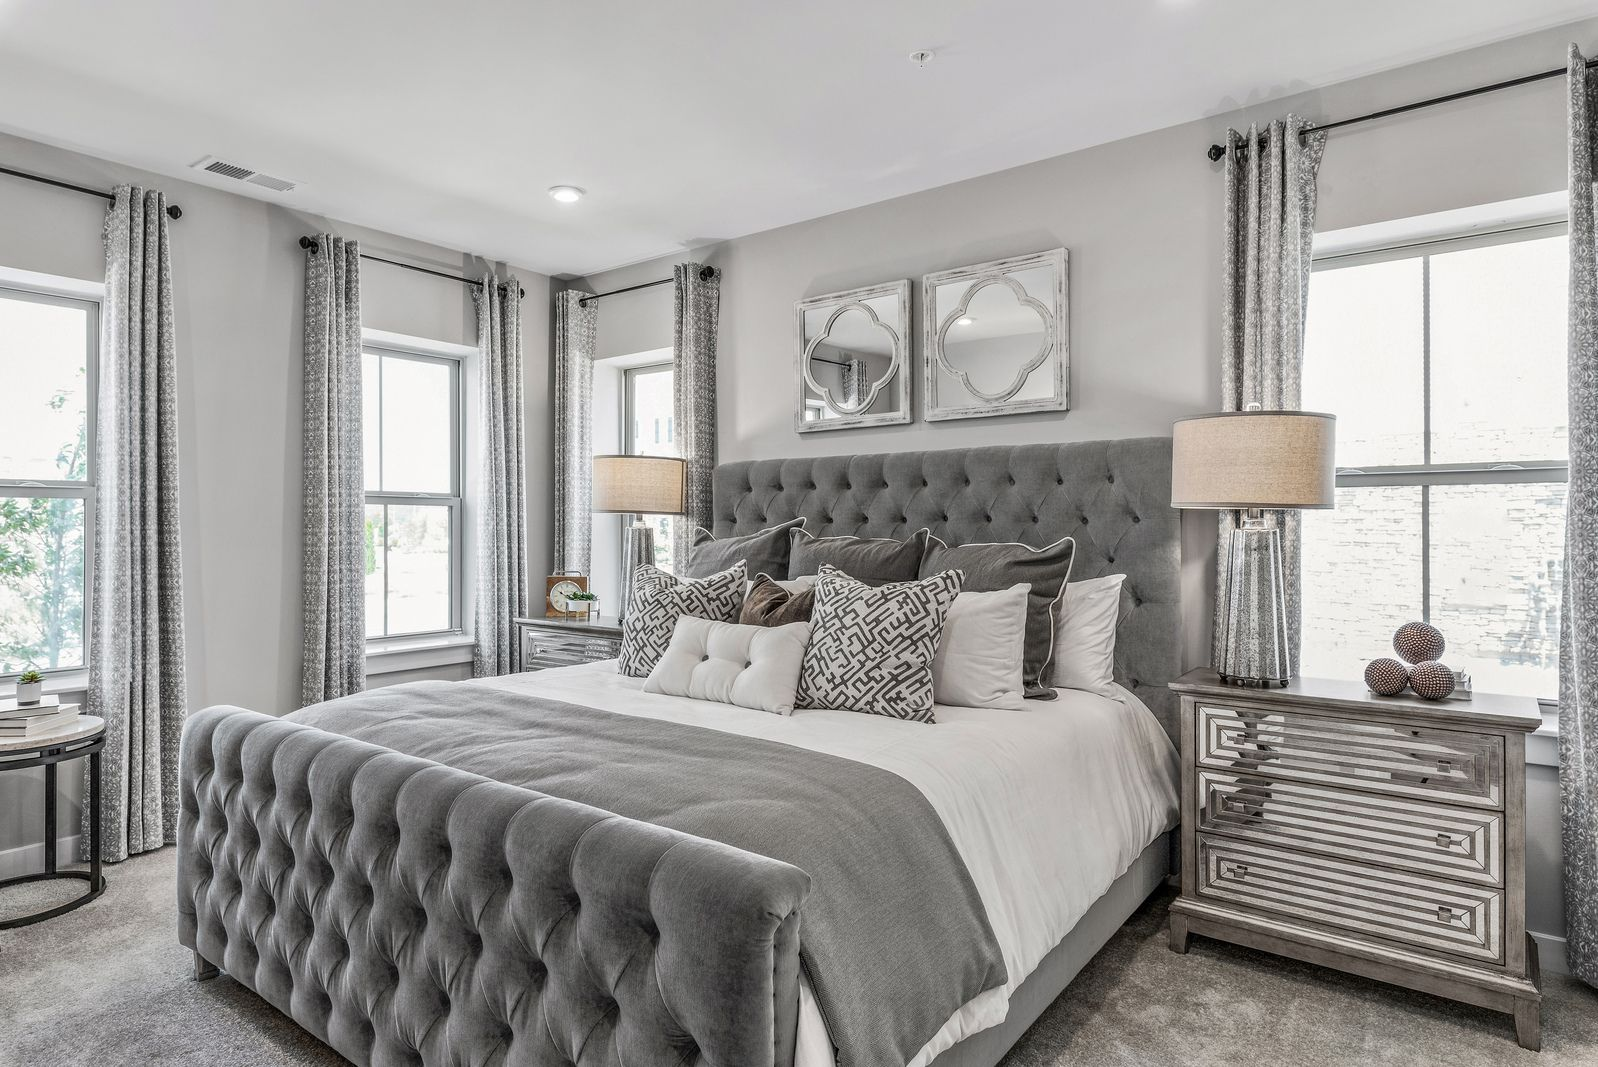 Bedroom featured in the Chambord Loft By Ryan Homes in Washington, MD